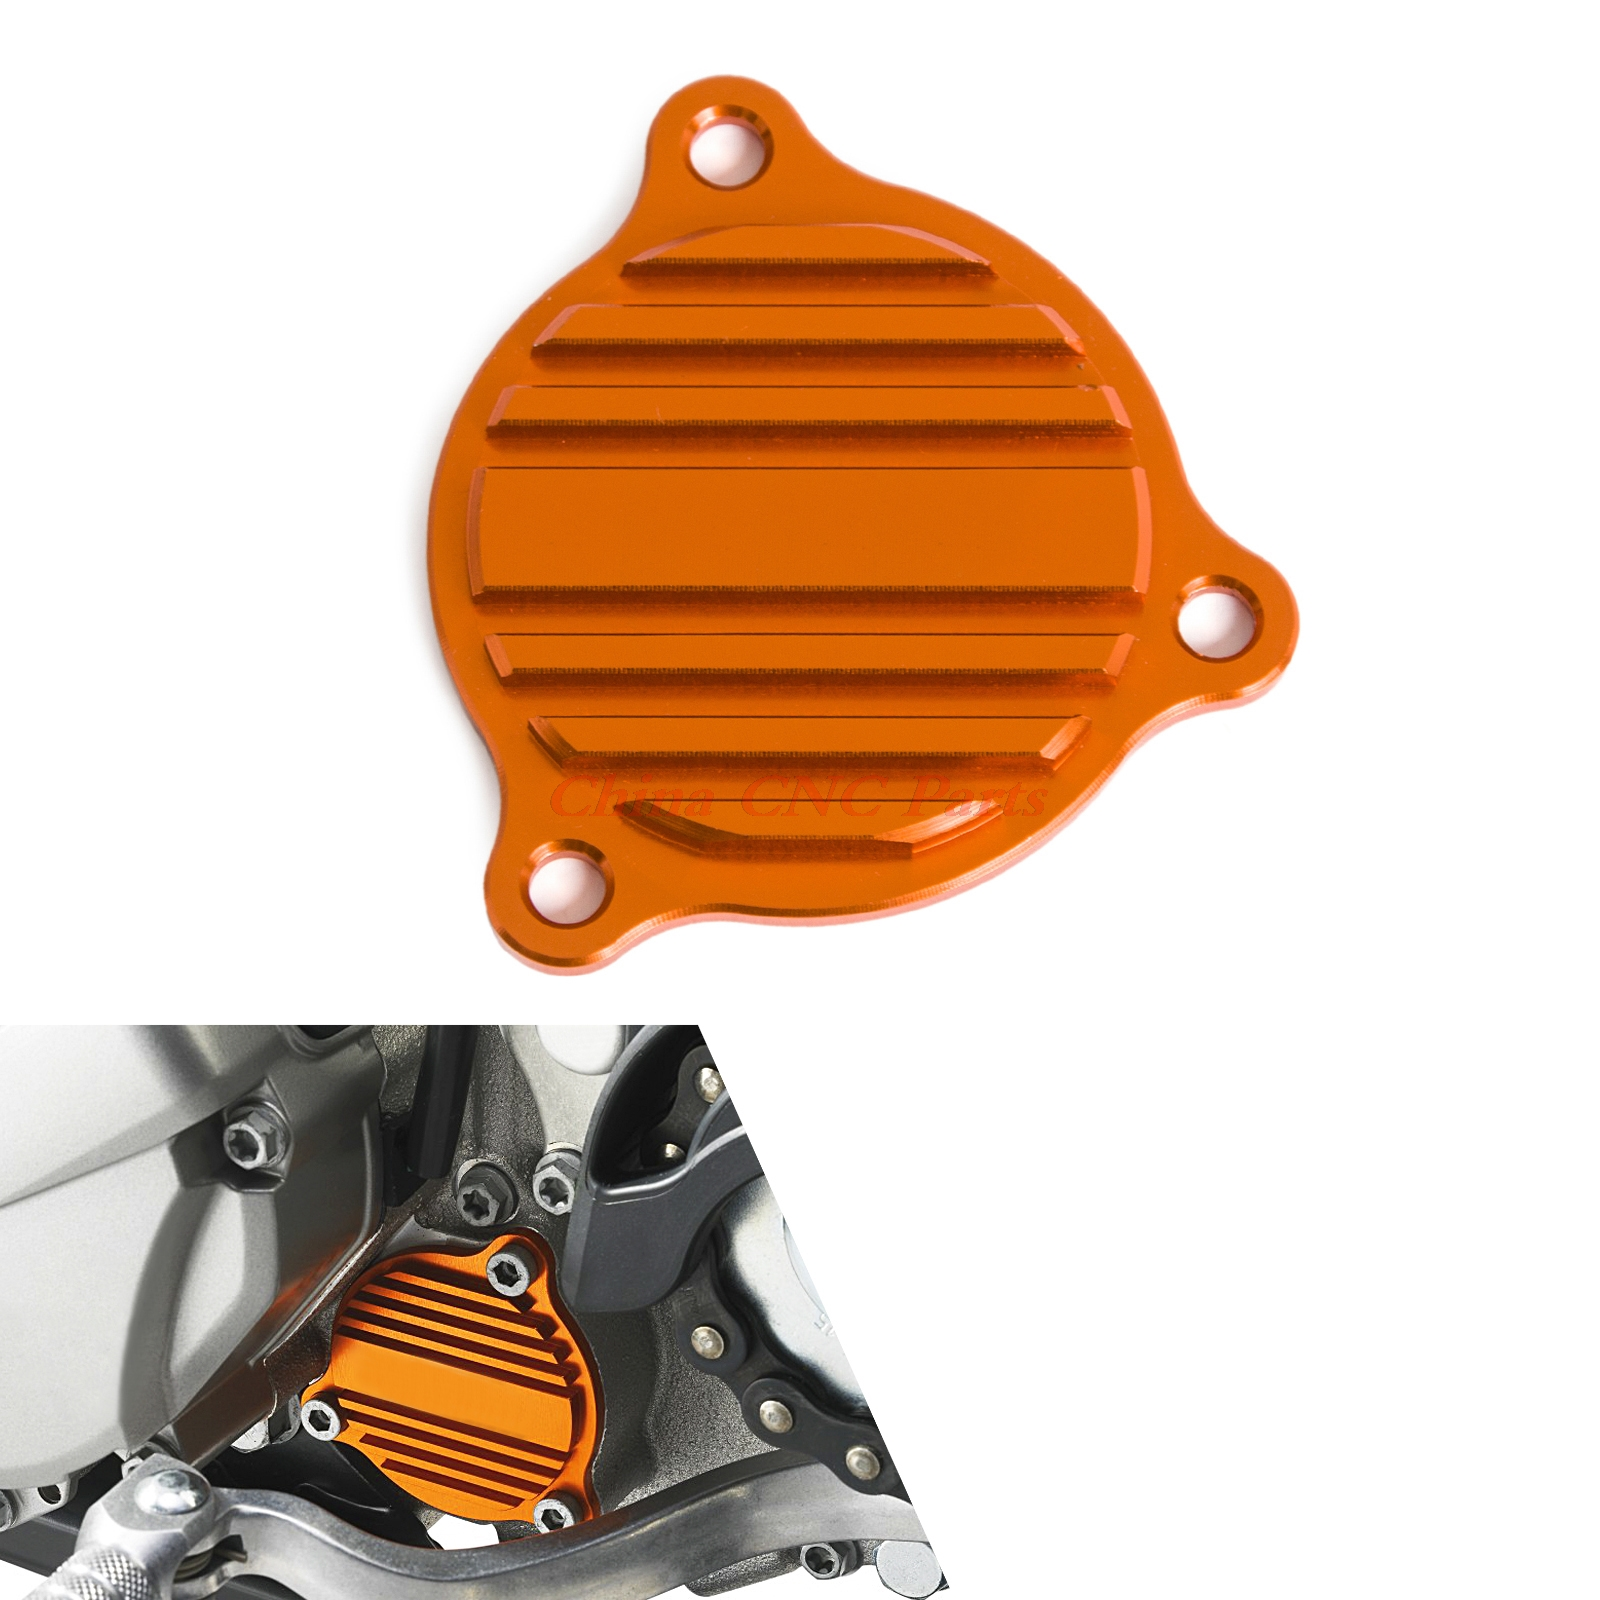 NICECNC Oil Filter Cover For KTM 250 350 450 500 530 SXF EXC SIX DAYS XCF XCW SMR FREERIDE Motocross Motorcycle Enduro Dirt Bike